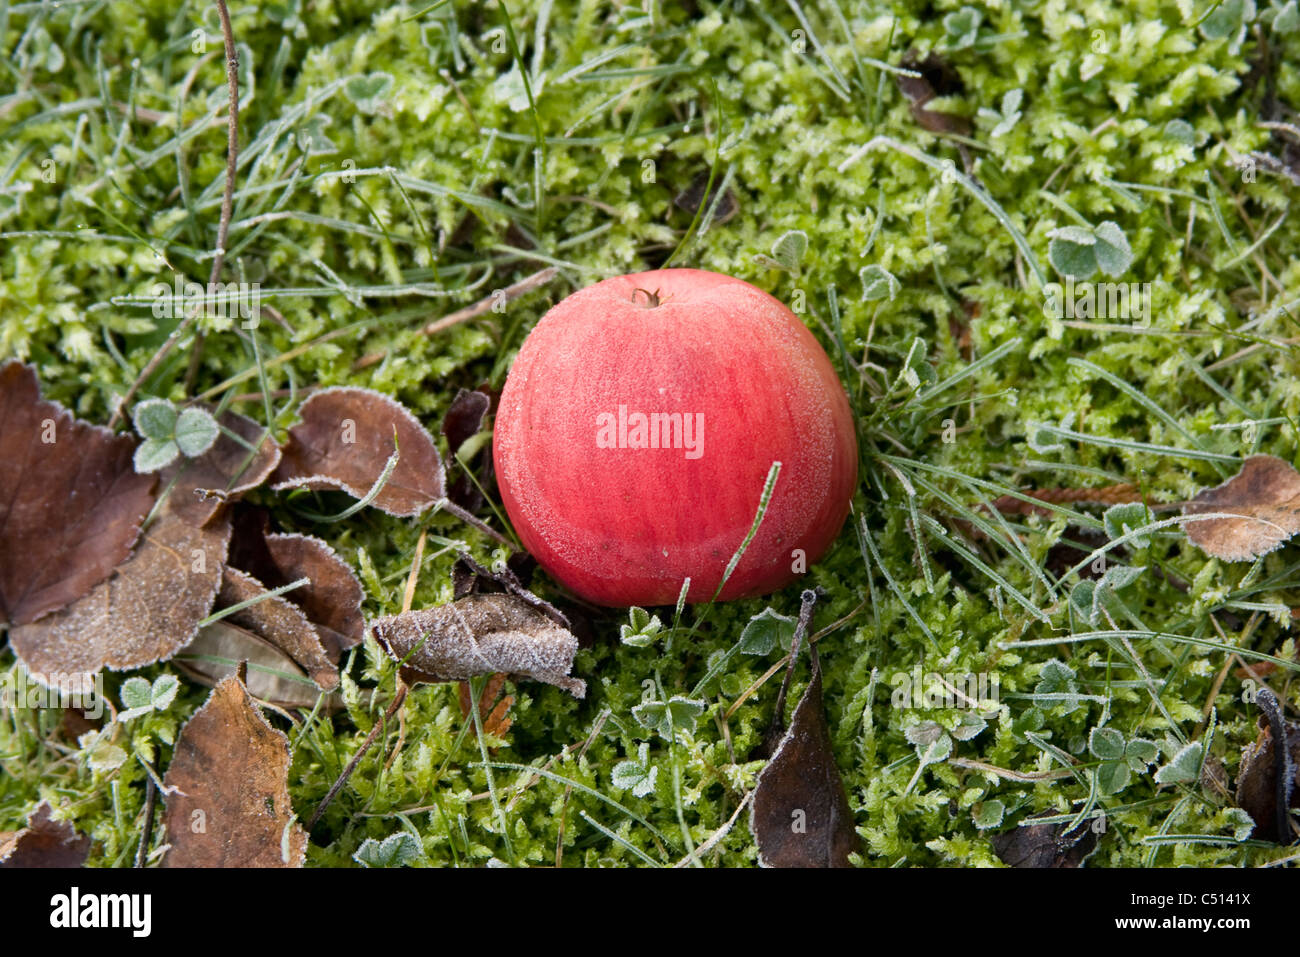 Frost covered apple resting on the ground - Stock Image